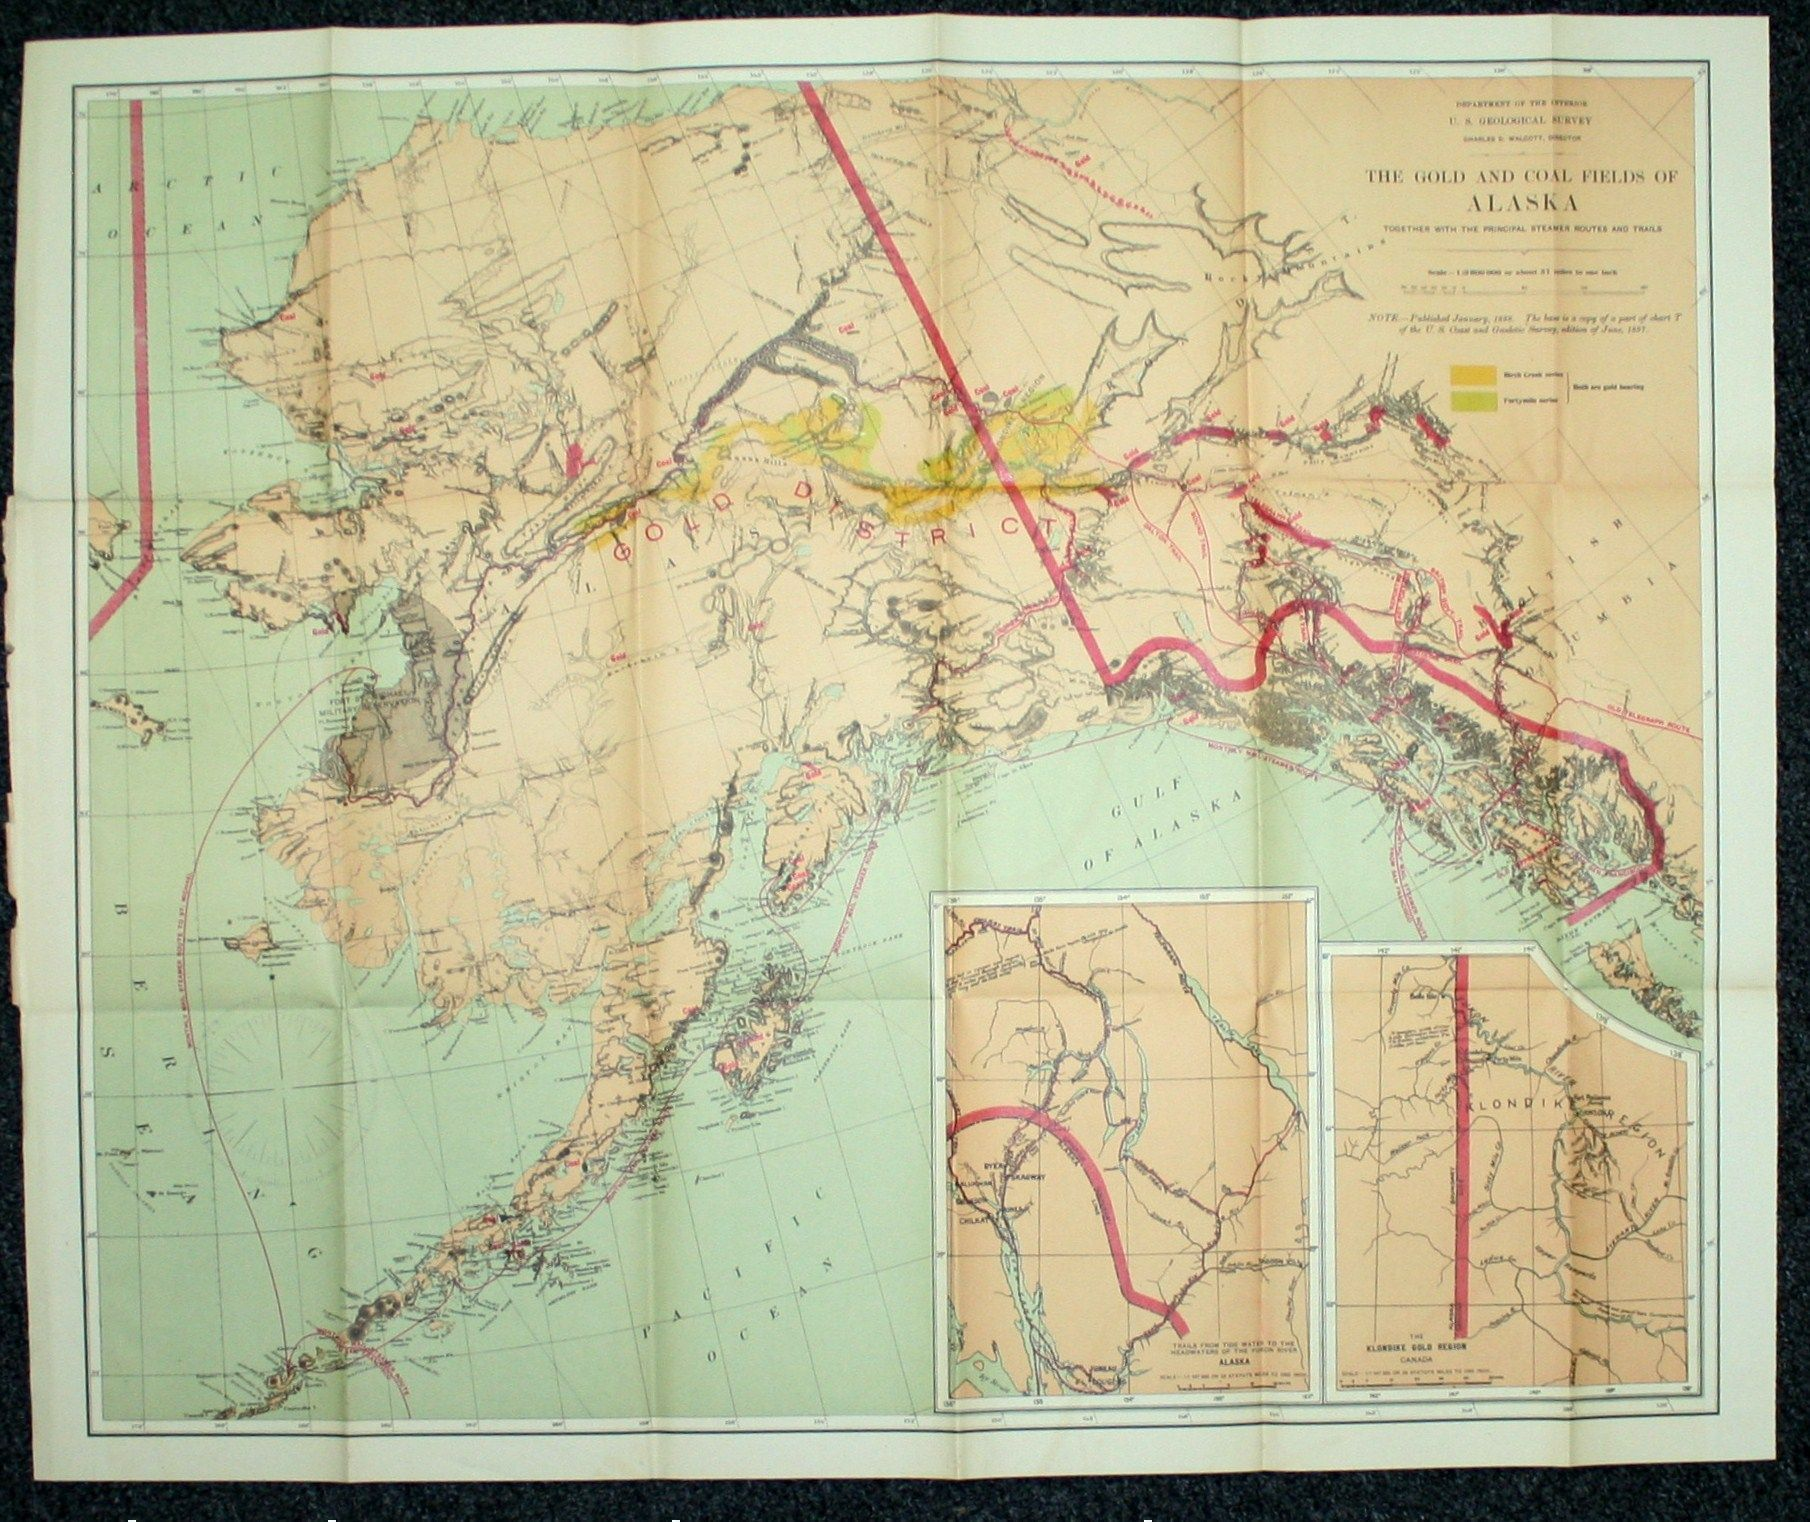 Map of Alaska Showing Known Gold-Bearing Rocks With Descriptive Text Known Gold Deposits Us Map on known gold deposits in michigan, liberia location on map, known gold mines in world map, natural oil deposits us map, kiev map, iron ore deposits us map, gem deposits us map, low temperature us map, us rail map, alaska gold deposits map, cool us map, united states coal map, aluminum mines united states map, natural gas deposits us map, iron mines world map, karst topography us map, kalahari desert map,